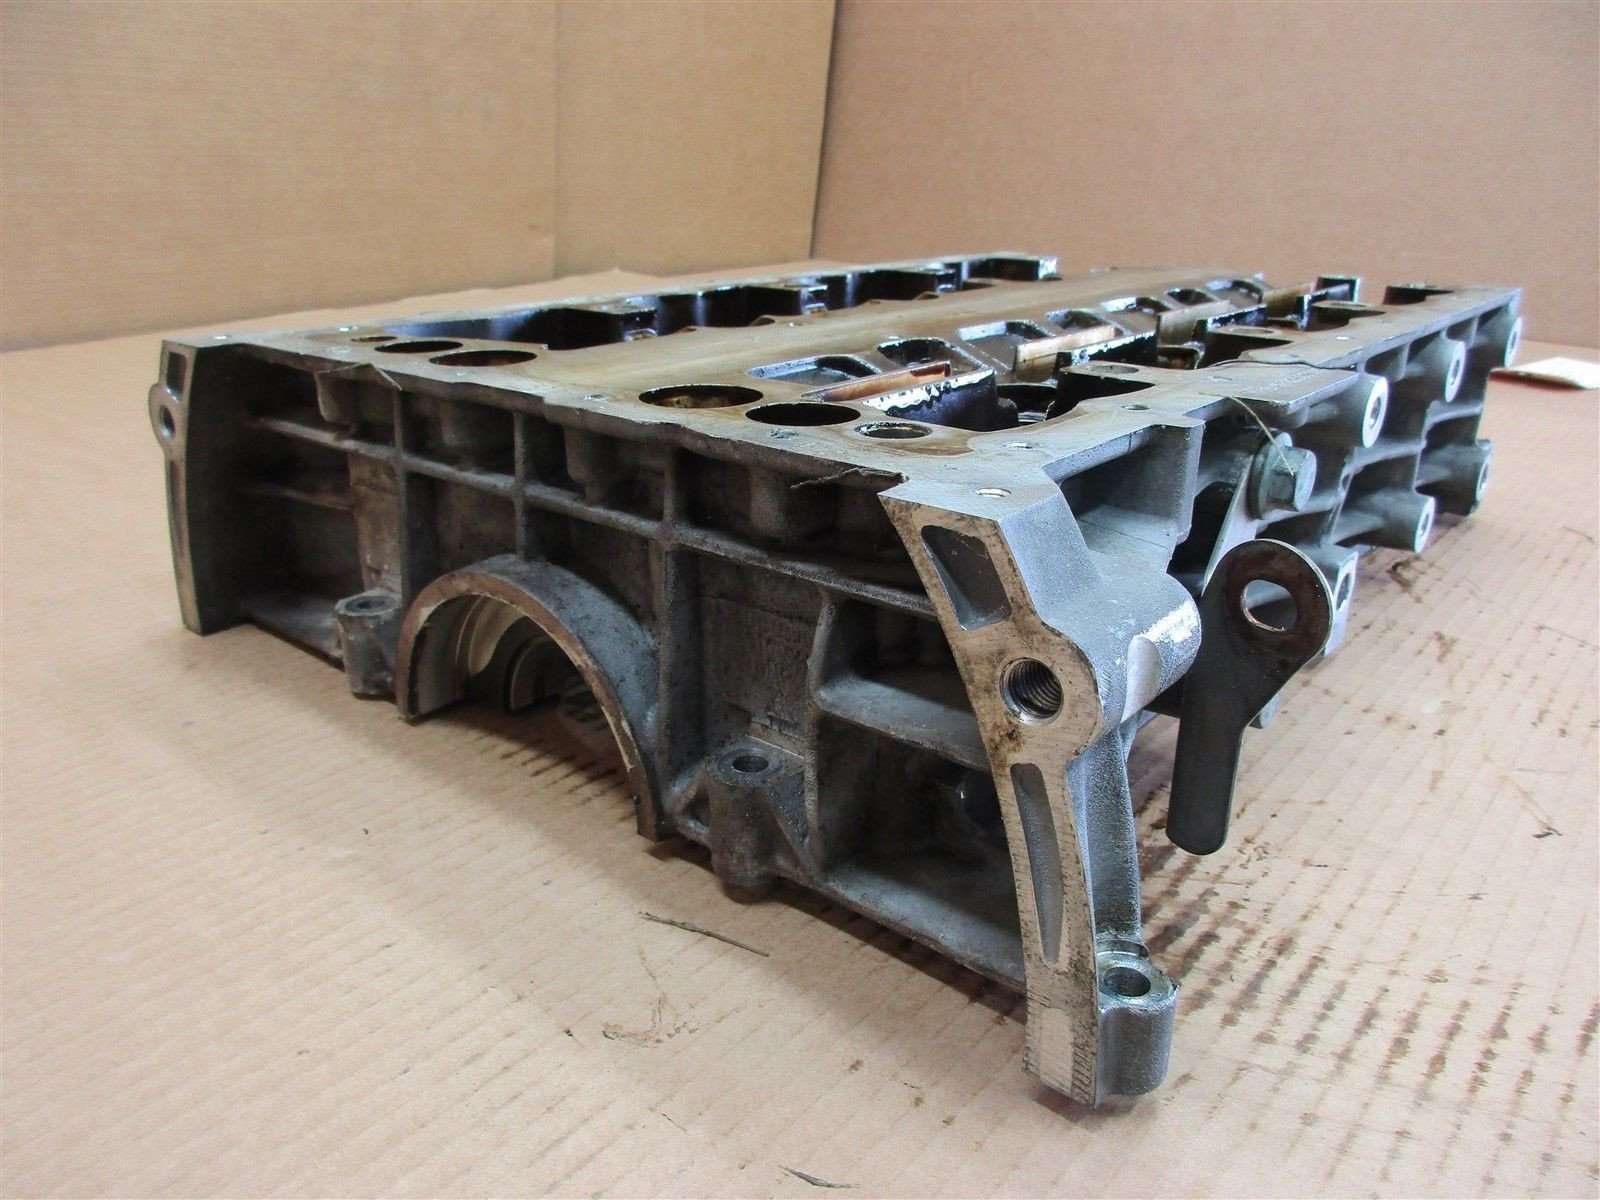 05 Cayenne Turbo AWD Porsche 955 Engine 4.5 CRANK CASE HOUSING 160,149